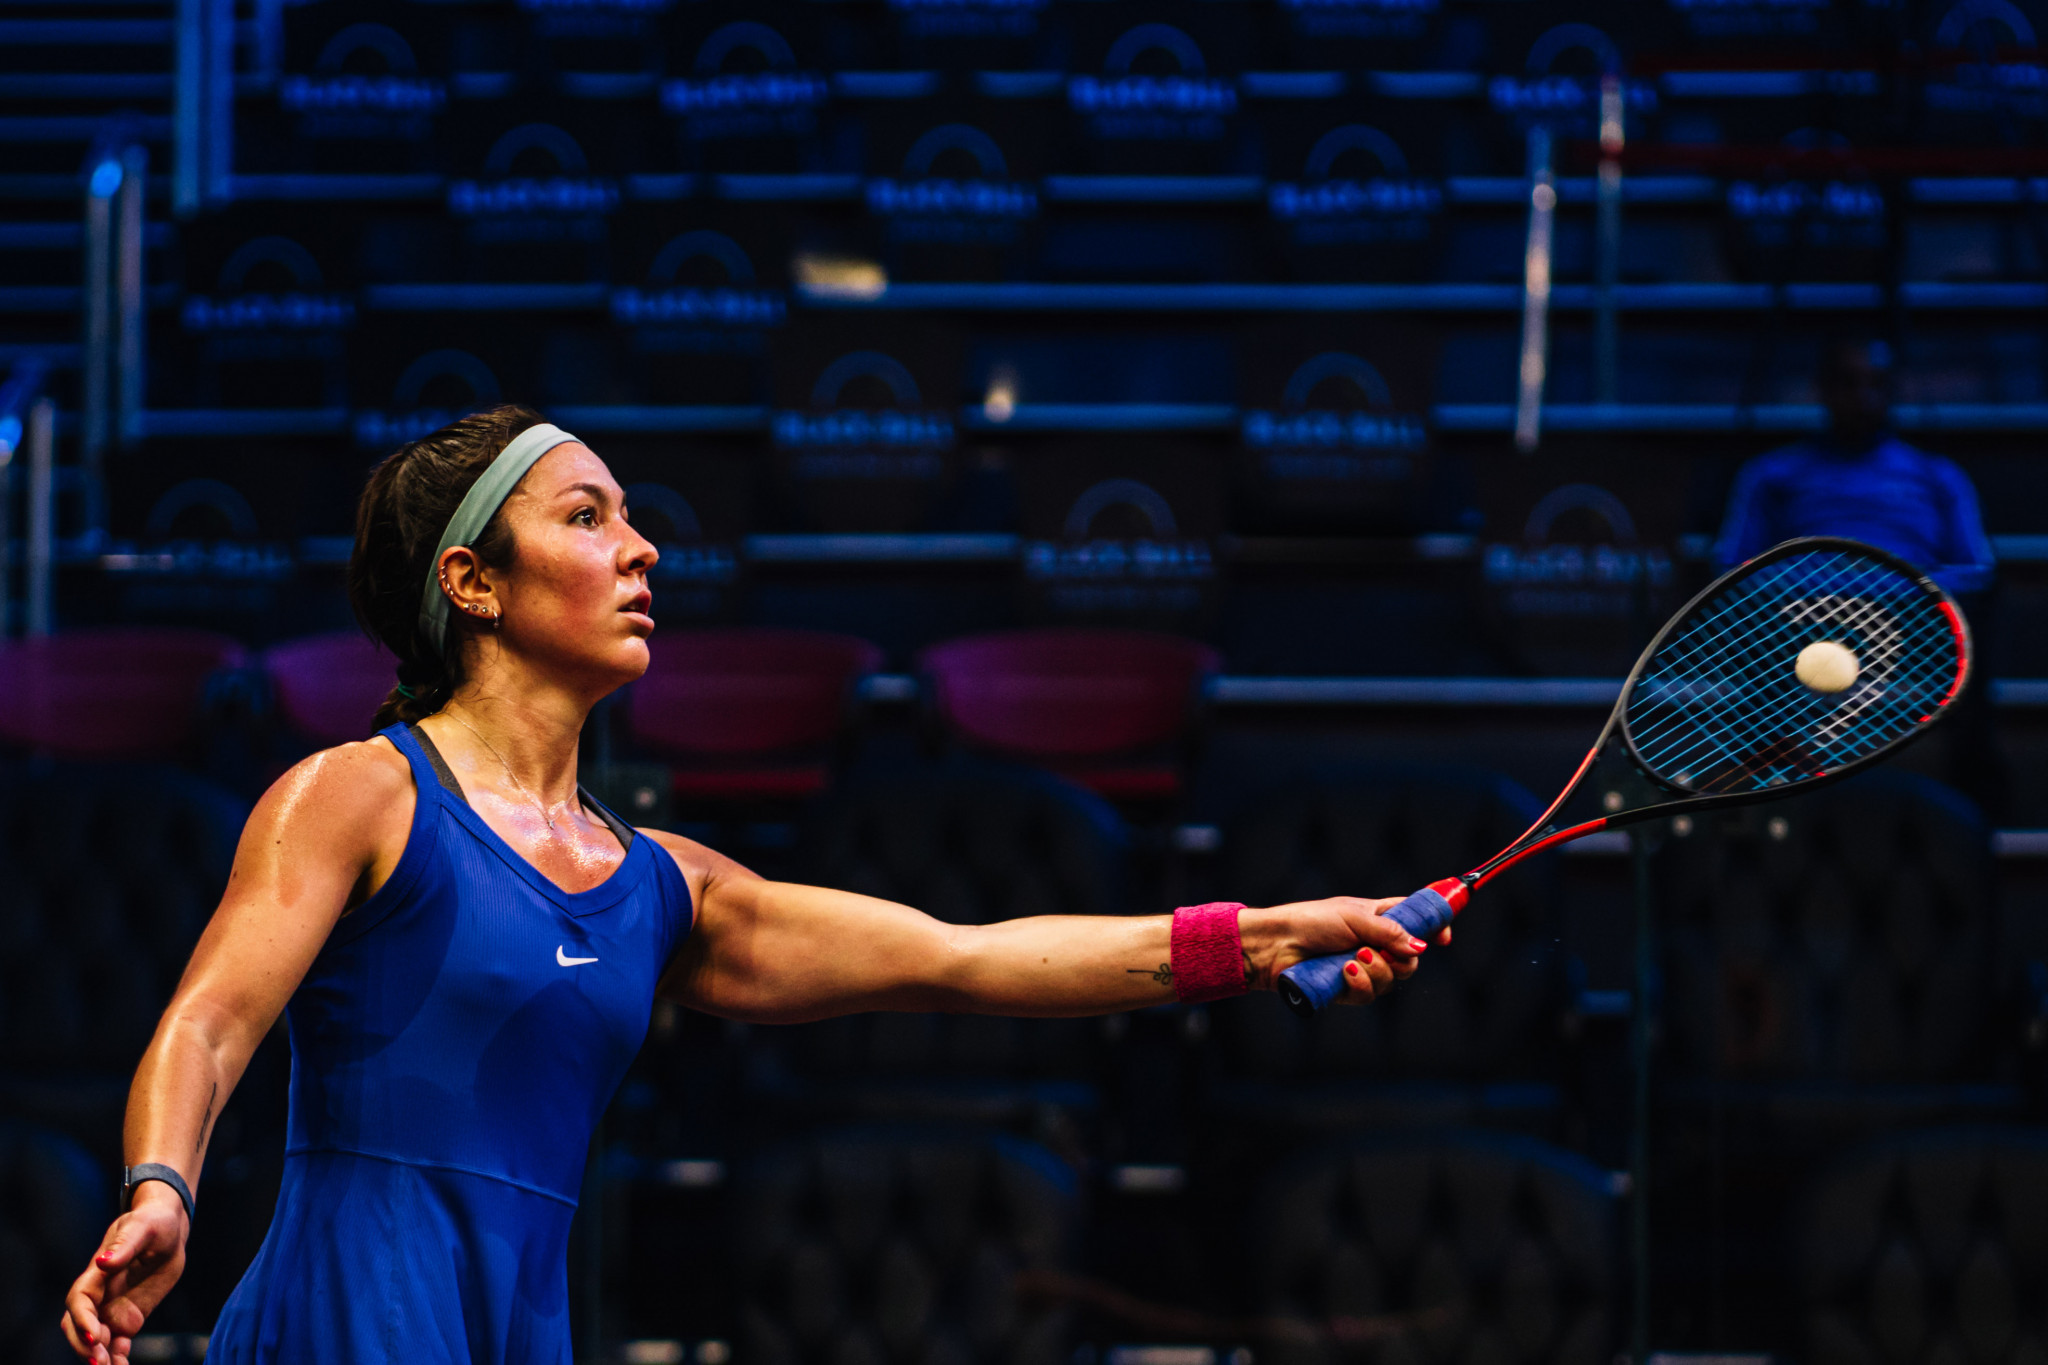 Amanda Sobhy has become the first player born in the United States to reach the top five of the Professional Squash Association's world rankings ©PSA